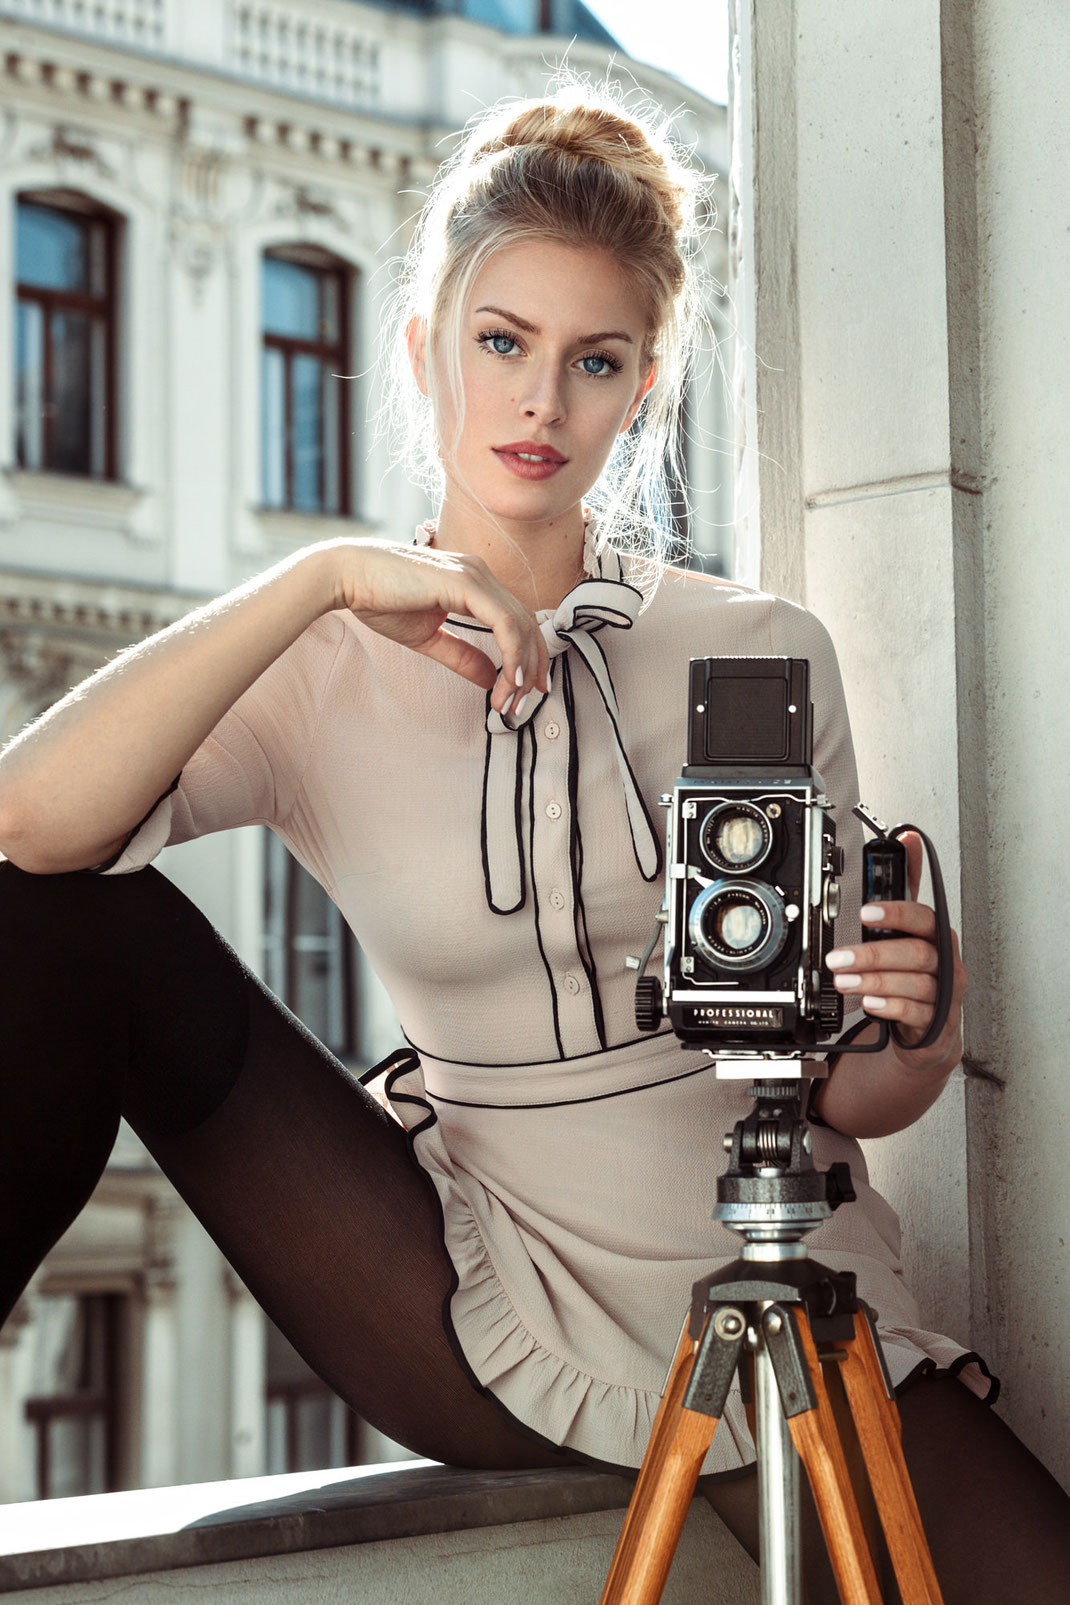 Two Beauties - Lisa & Mamiya C3 Professional on Berlebach Tripod - Markus Hertzsch